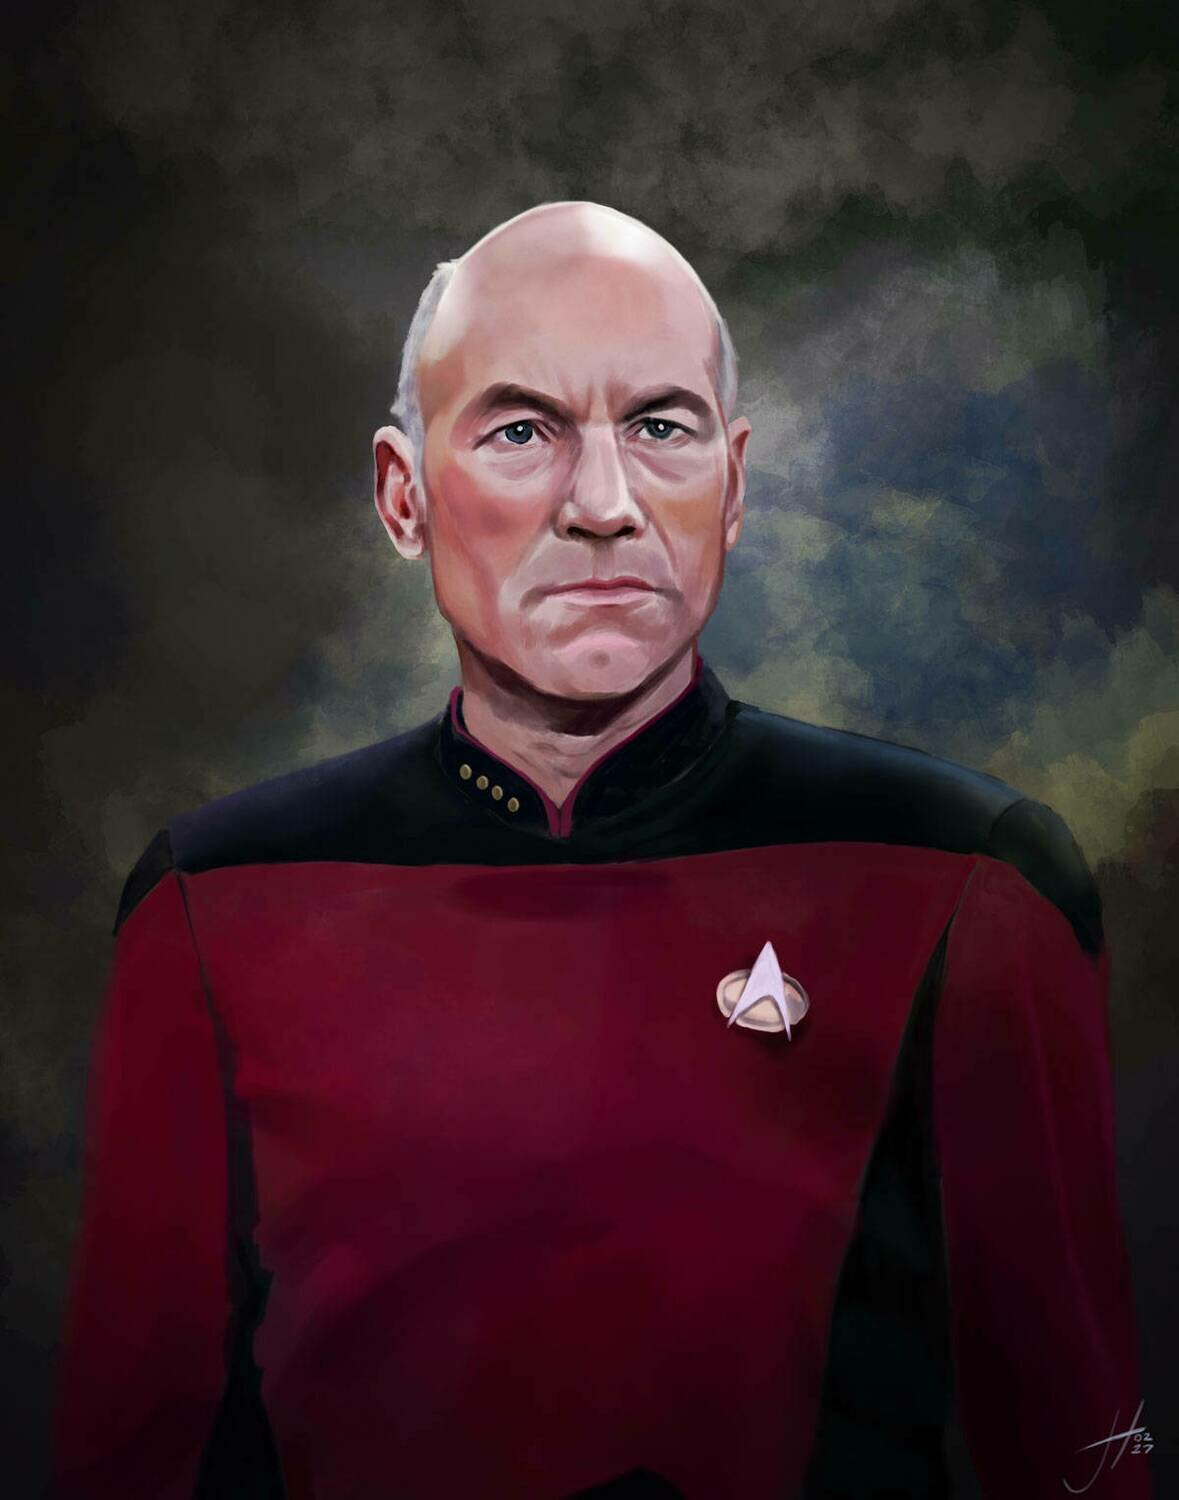 Patrick Stewart Jean Luc Picard On Star Trek Art Print